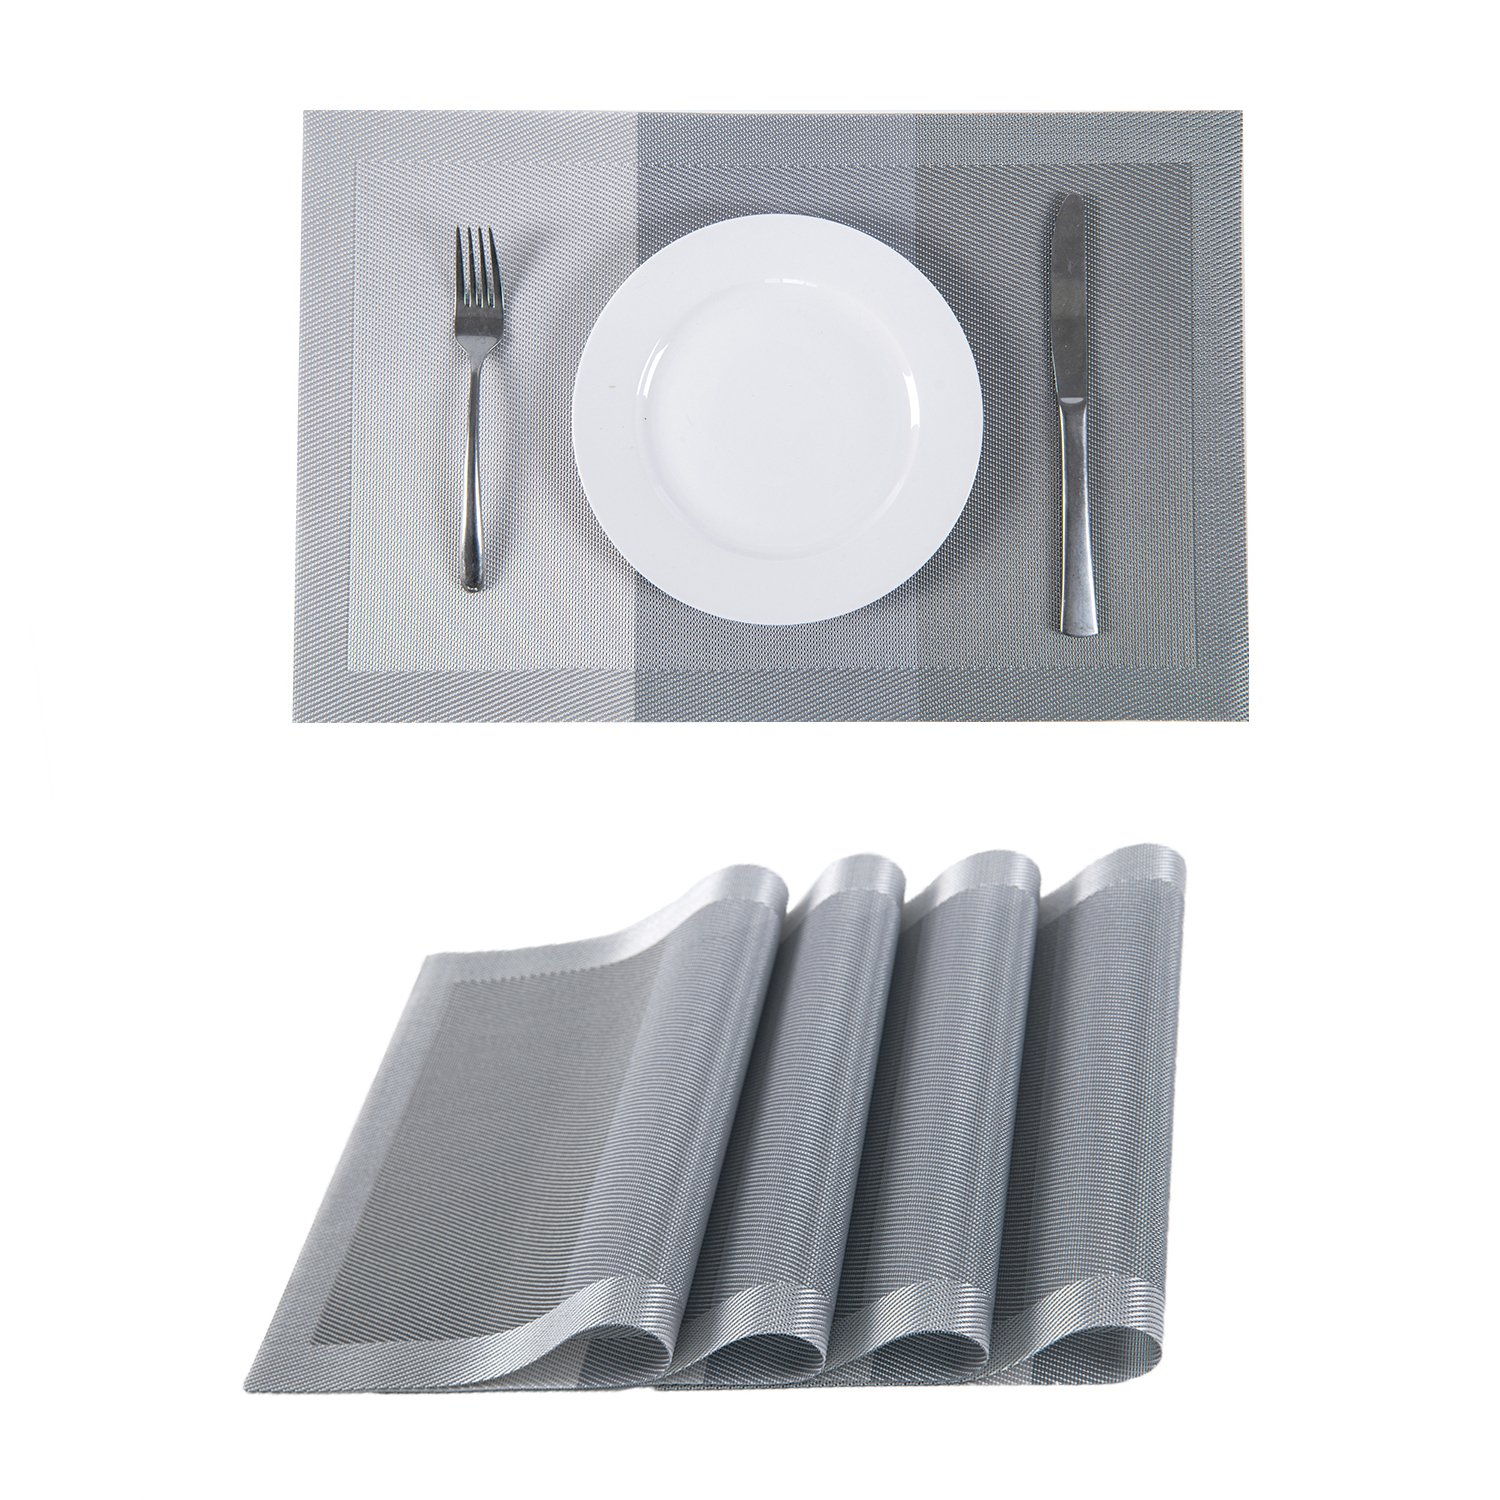 SUNSHINE FASHION Set of 4 Placemats,Placemats for Dining Table,Heat-resistant Placemats, Stain Resistant Washable PVC Table Mats,Kitchen Table mats(4, Strip-Gray)